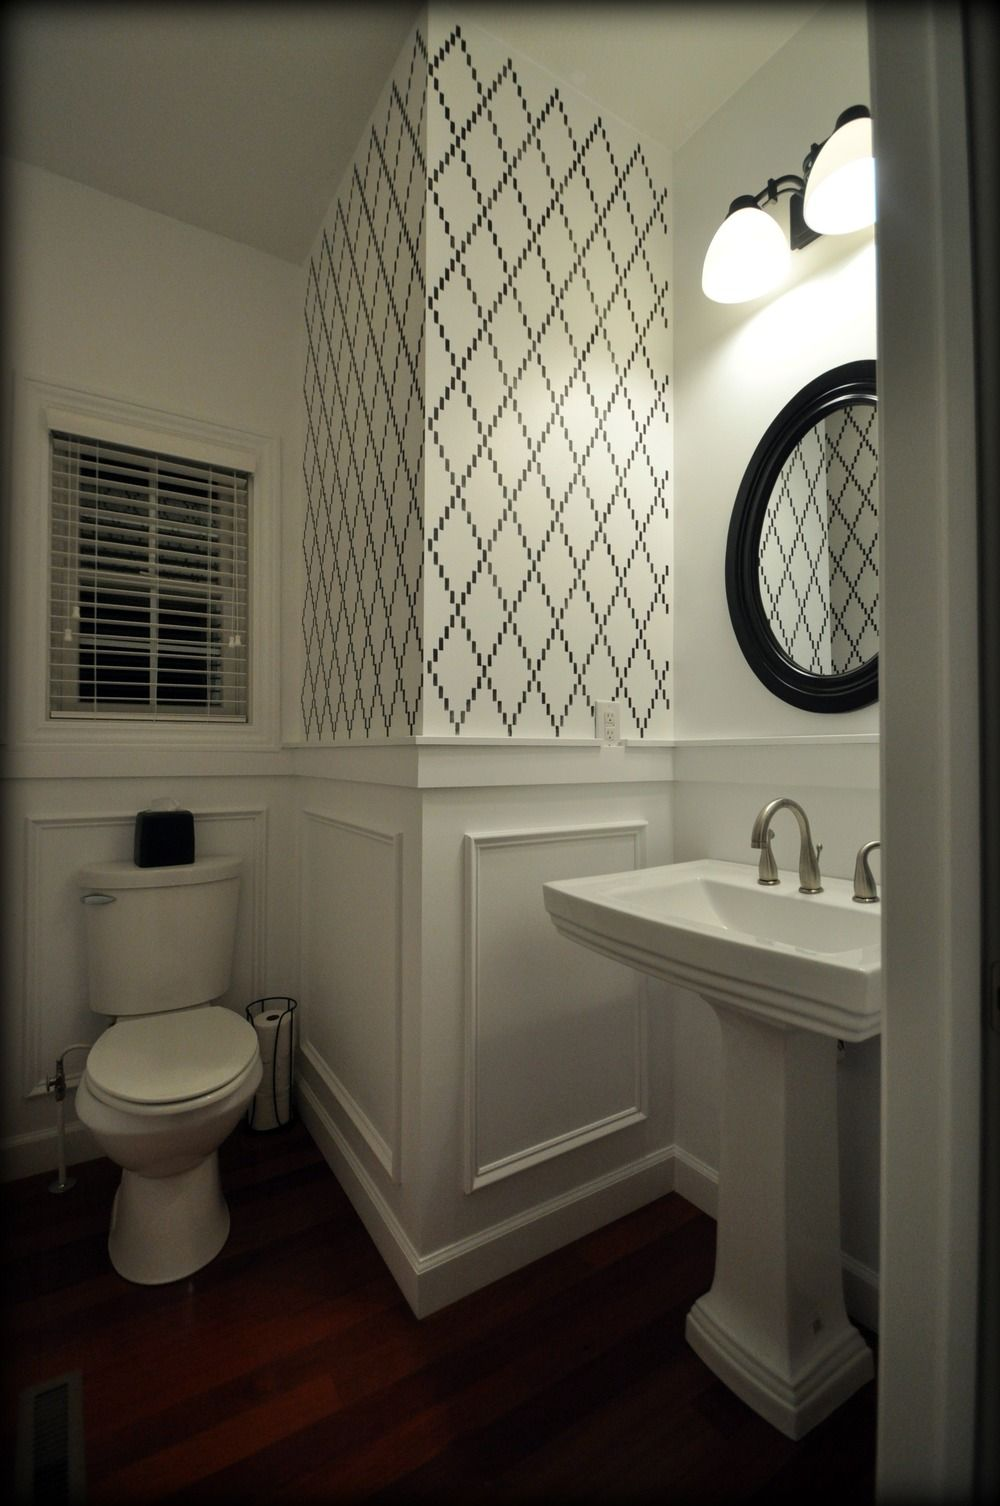 Powder Room Black And White Stencil Walls Wall Molding Click For Details Black White Bathrooms Bathrooms Remodel Powder Room